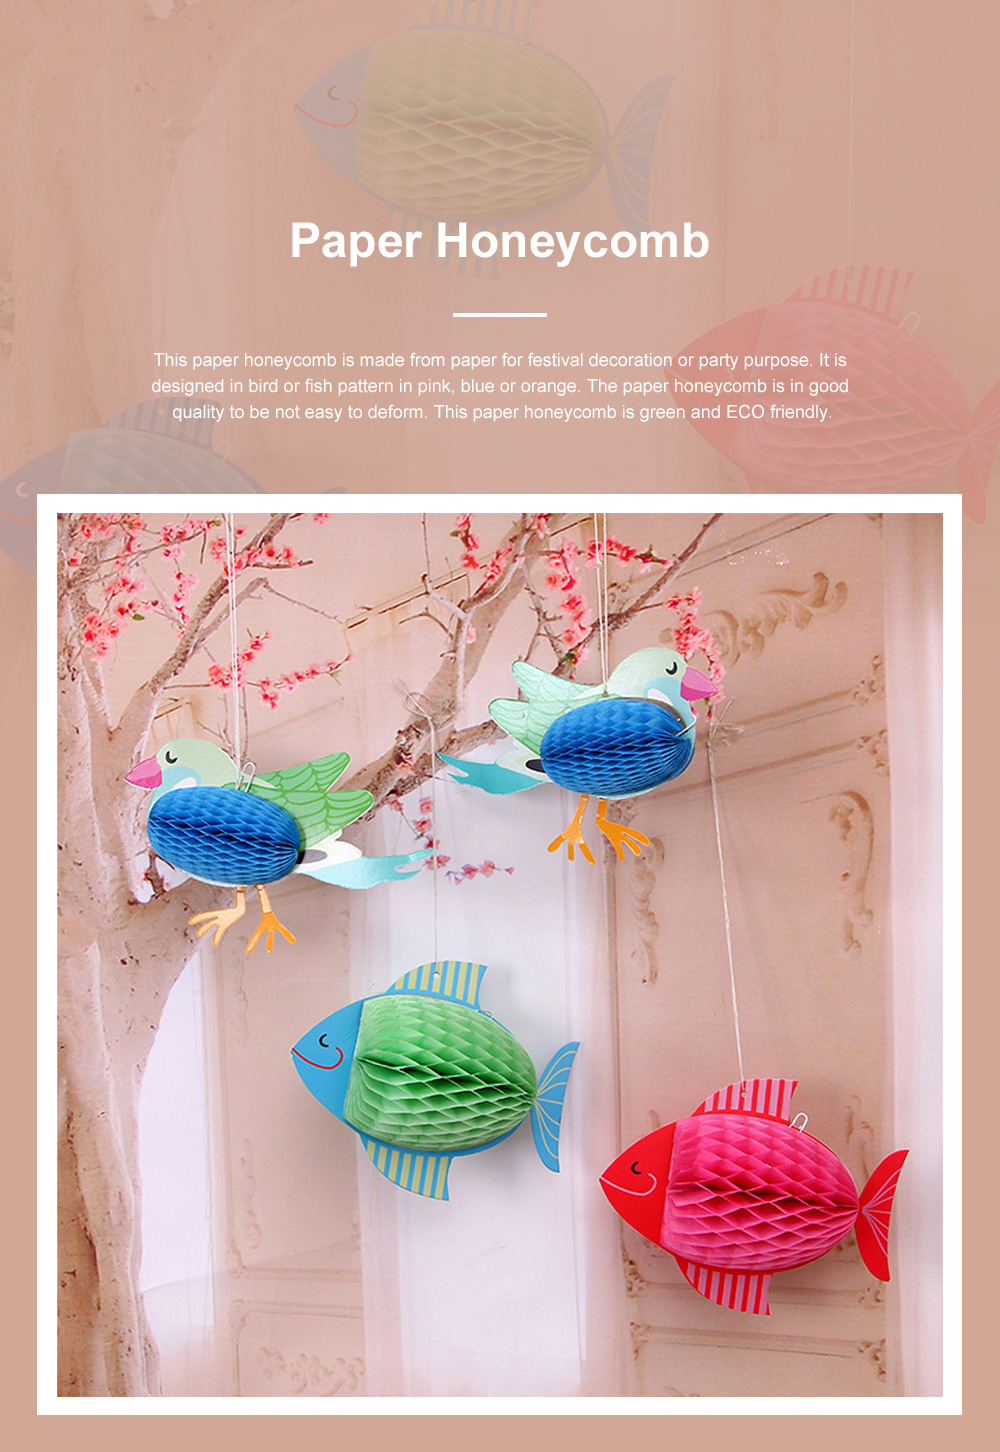 6pcs Festive Decoration Bird Fish Paper Honeycomb Party Use Three-dimensional Card Fish Paper Honeycomb Paper Flowers Ball 0